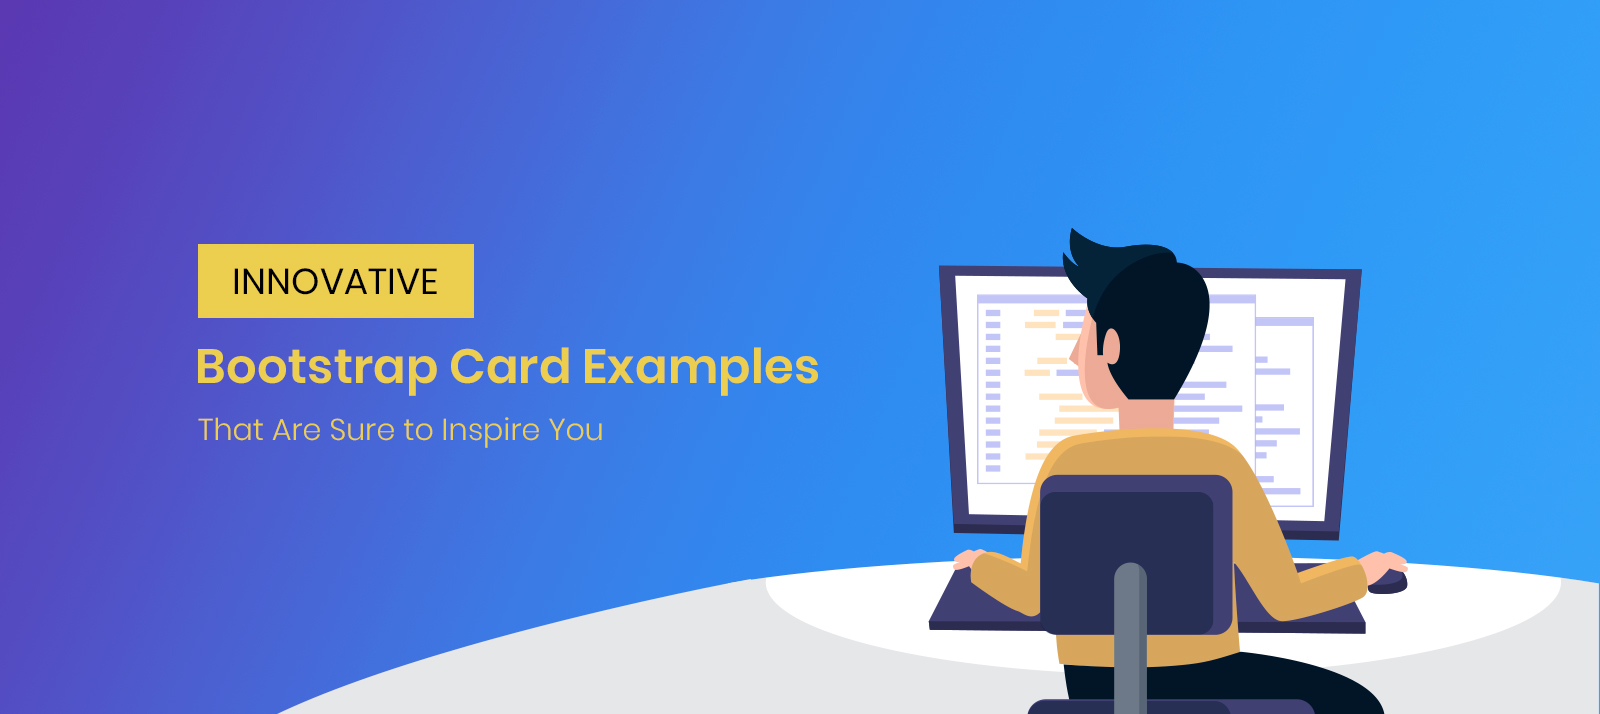 10 Innovative Bootstrap Card Examples That Are Sure to Inspire You